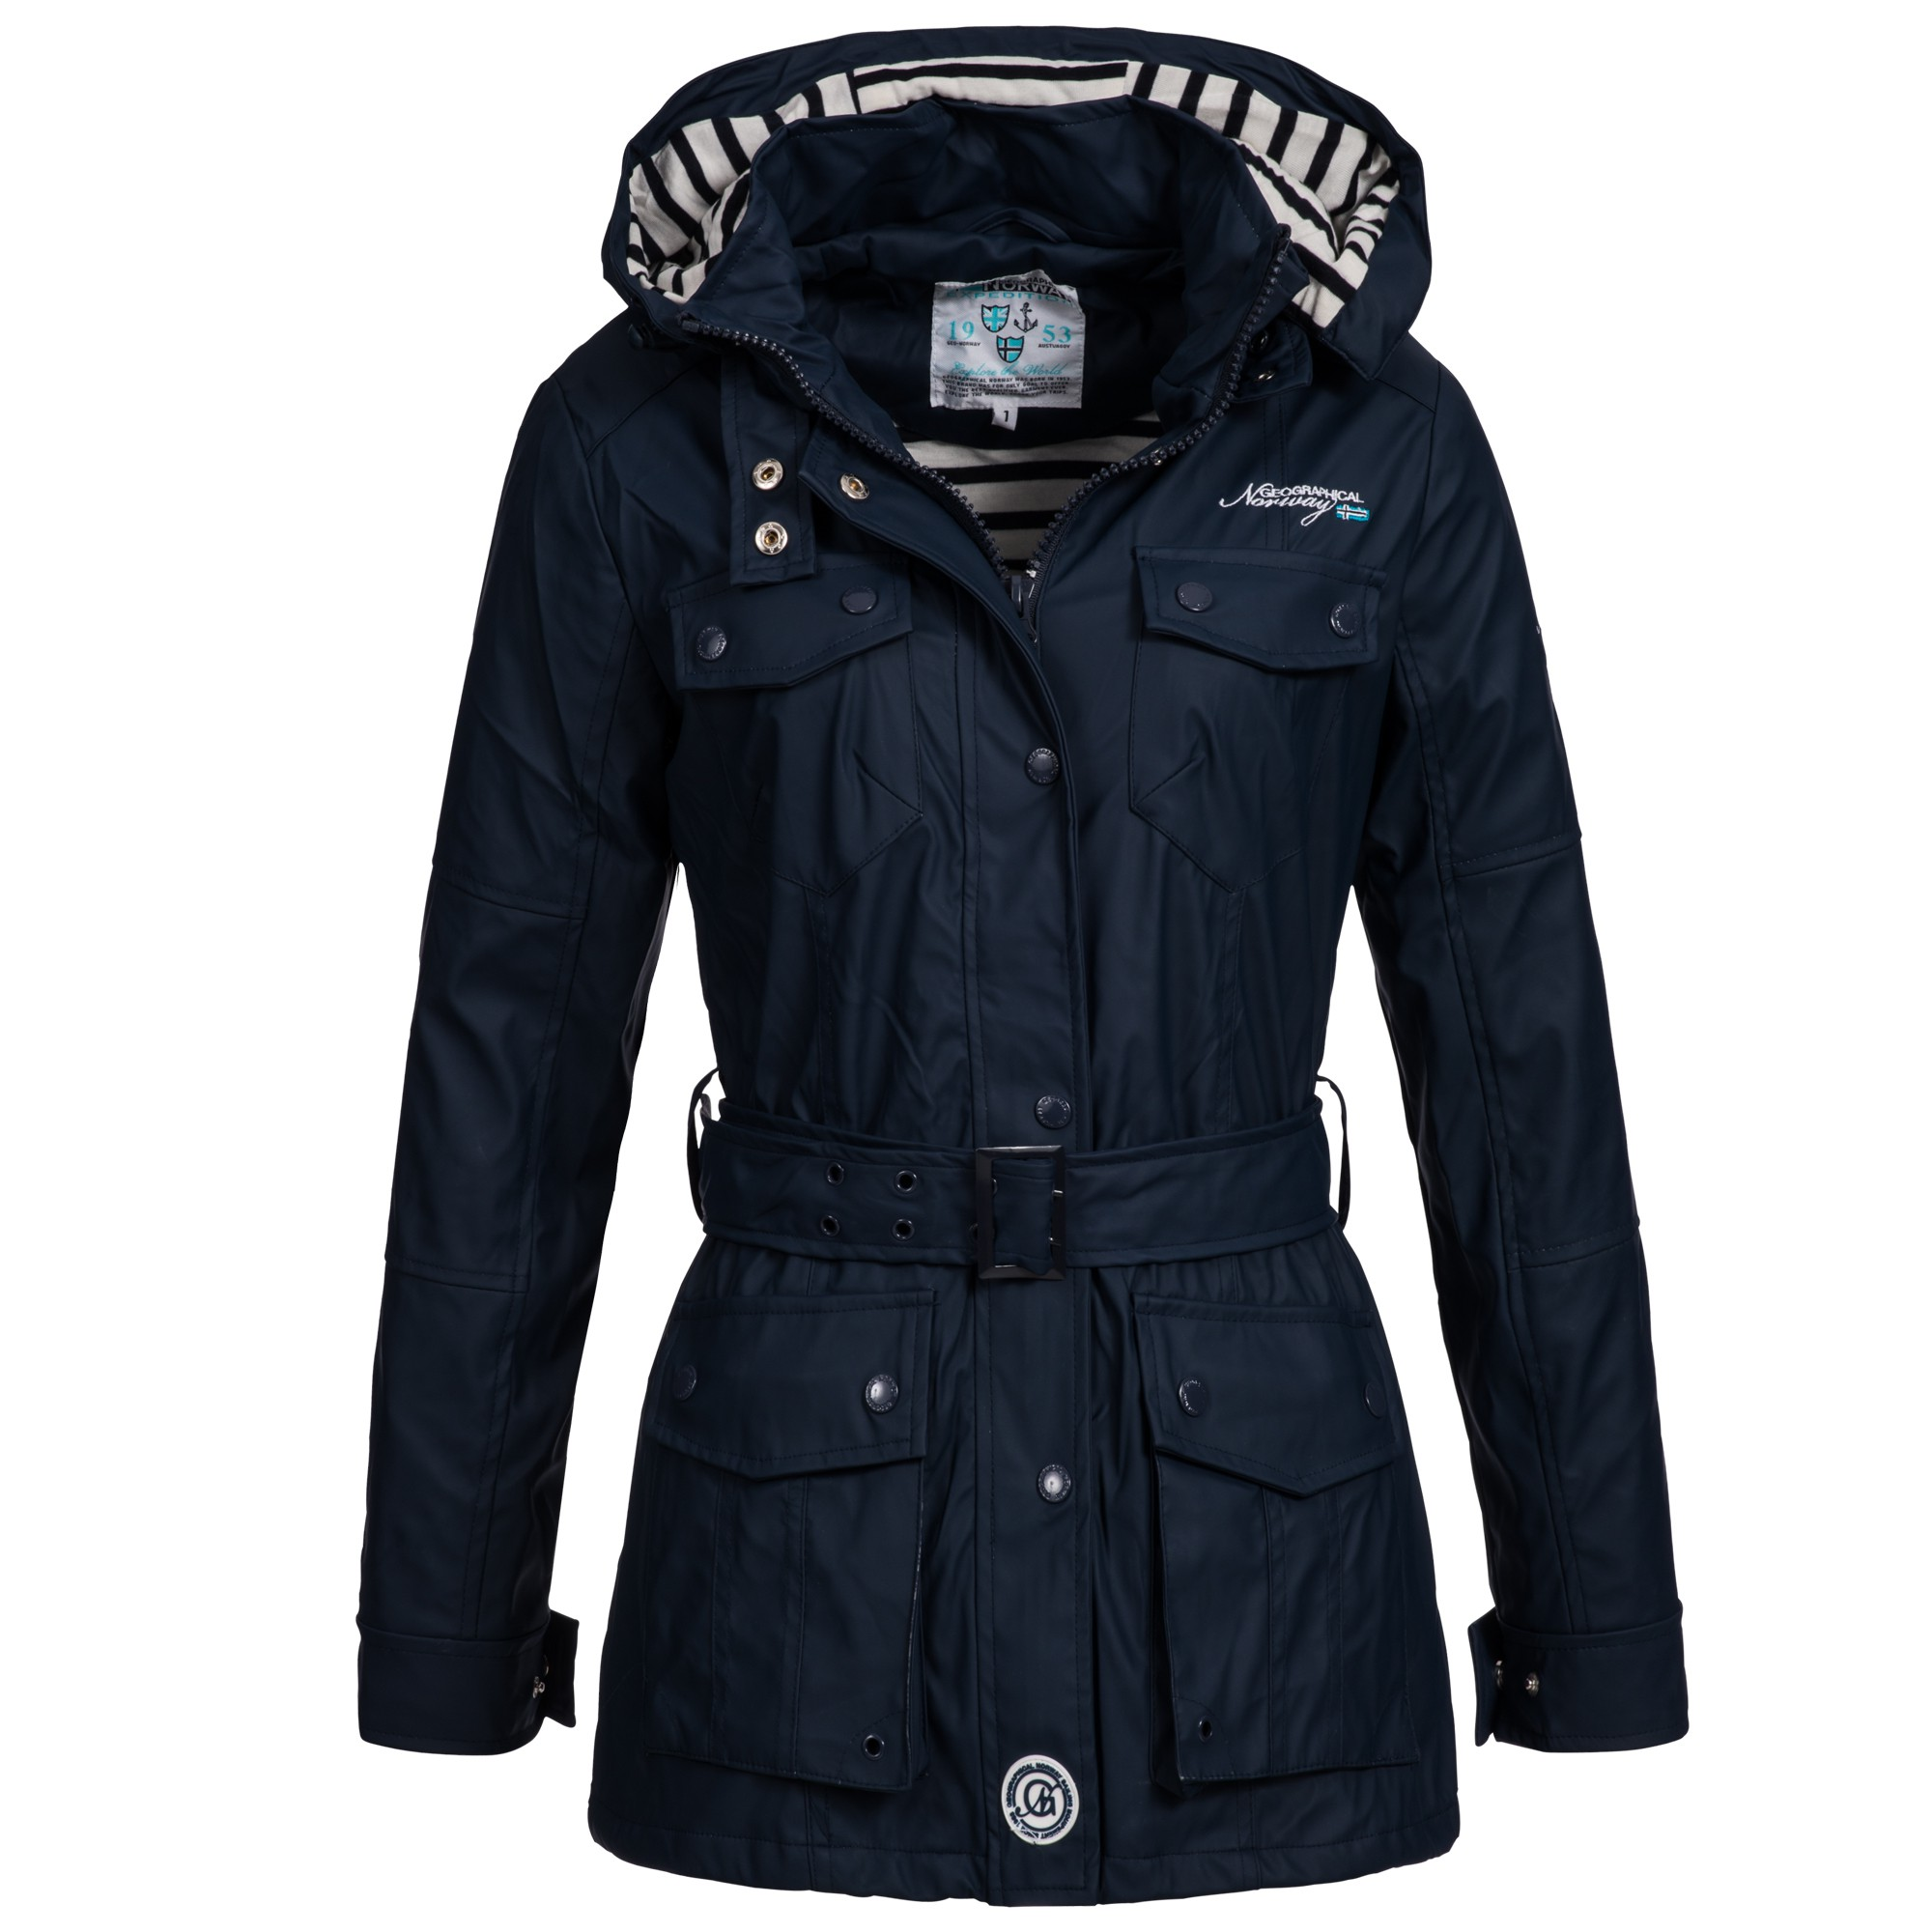 geographical norway amanda damen bergangsjacke regen jacke mantel trenchcoat ebay. Black Bedroom Furniture Sets. Home Design Ideas